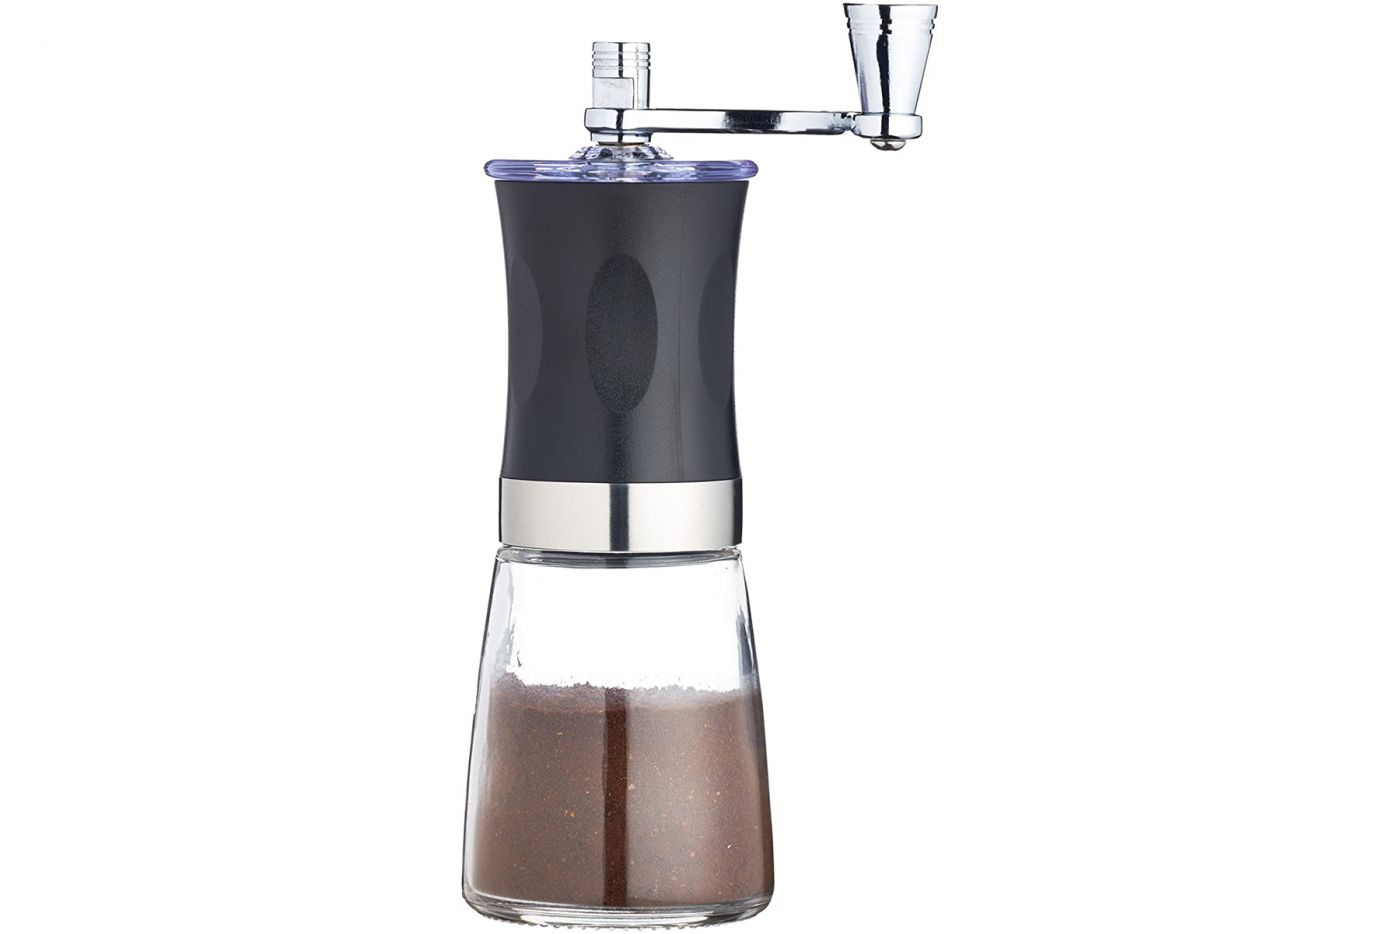 Le 'Xpress Coffee Grinder